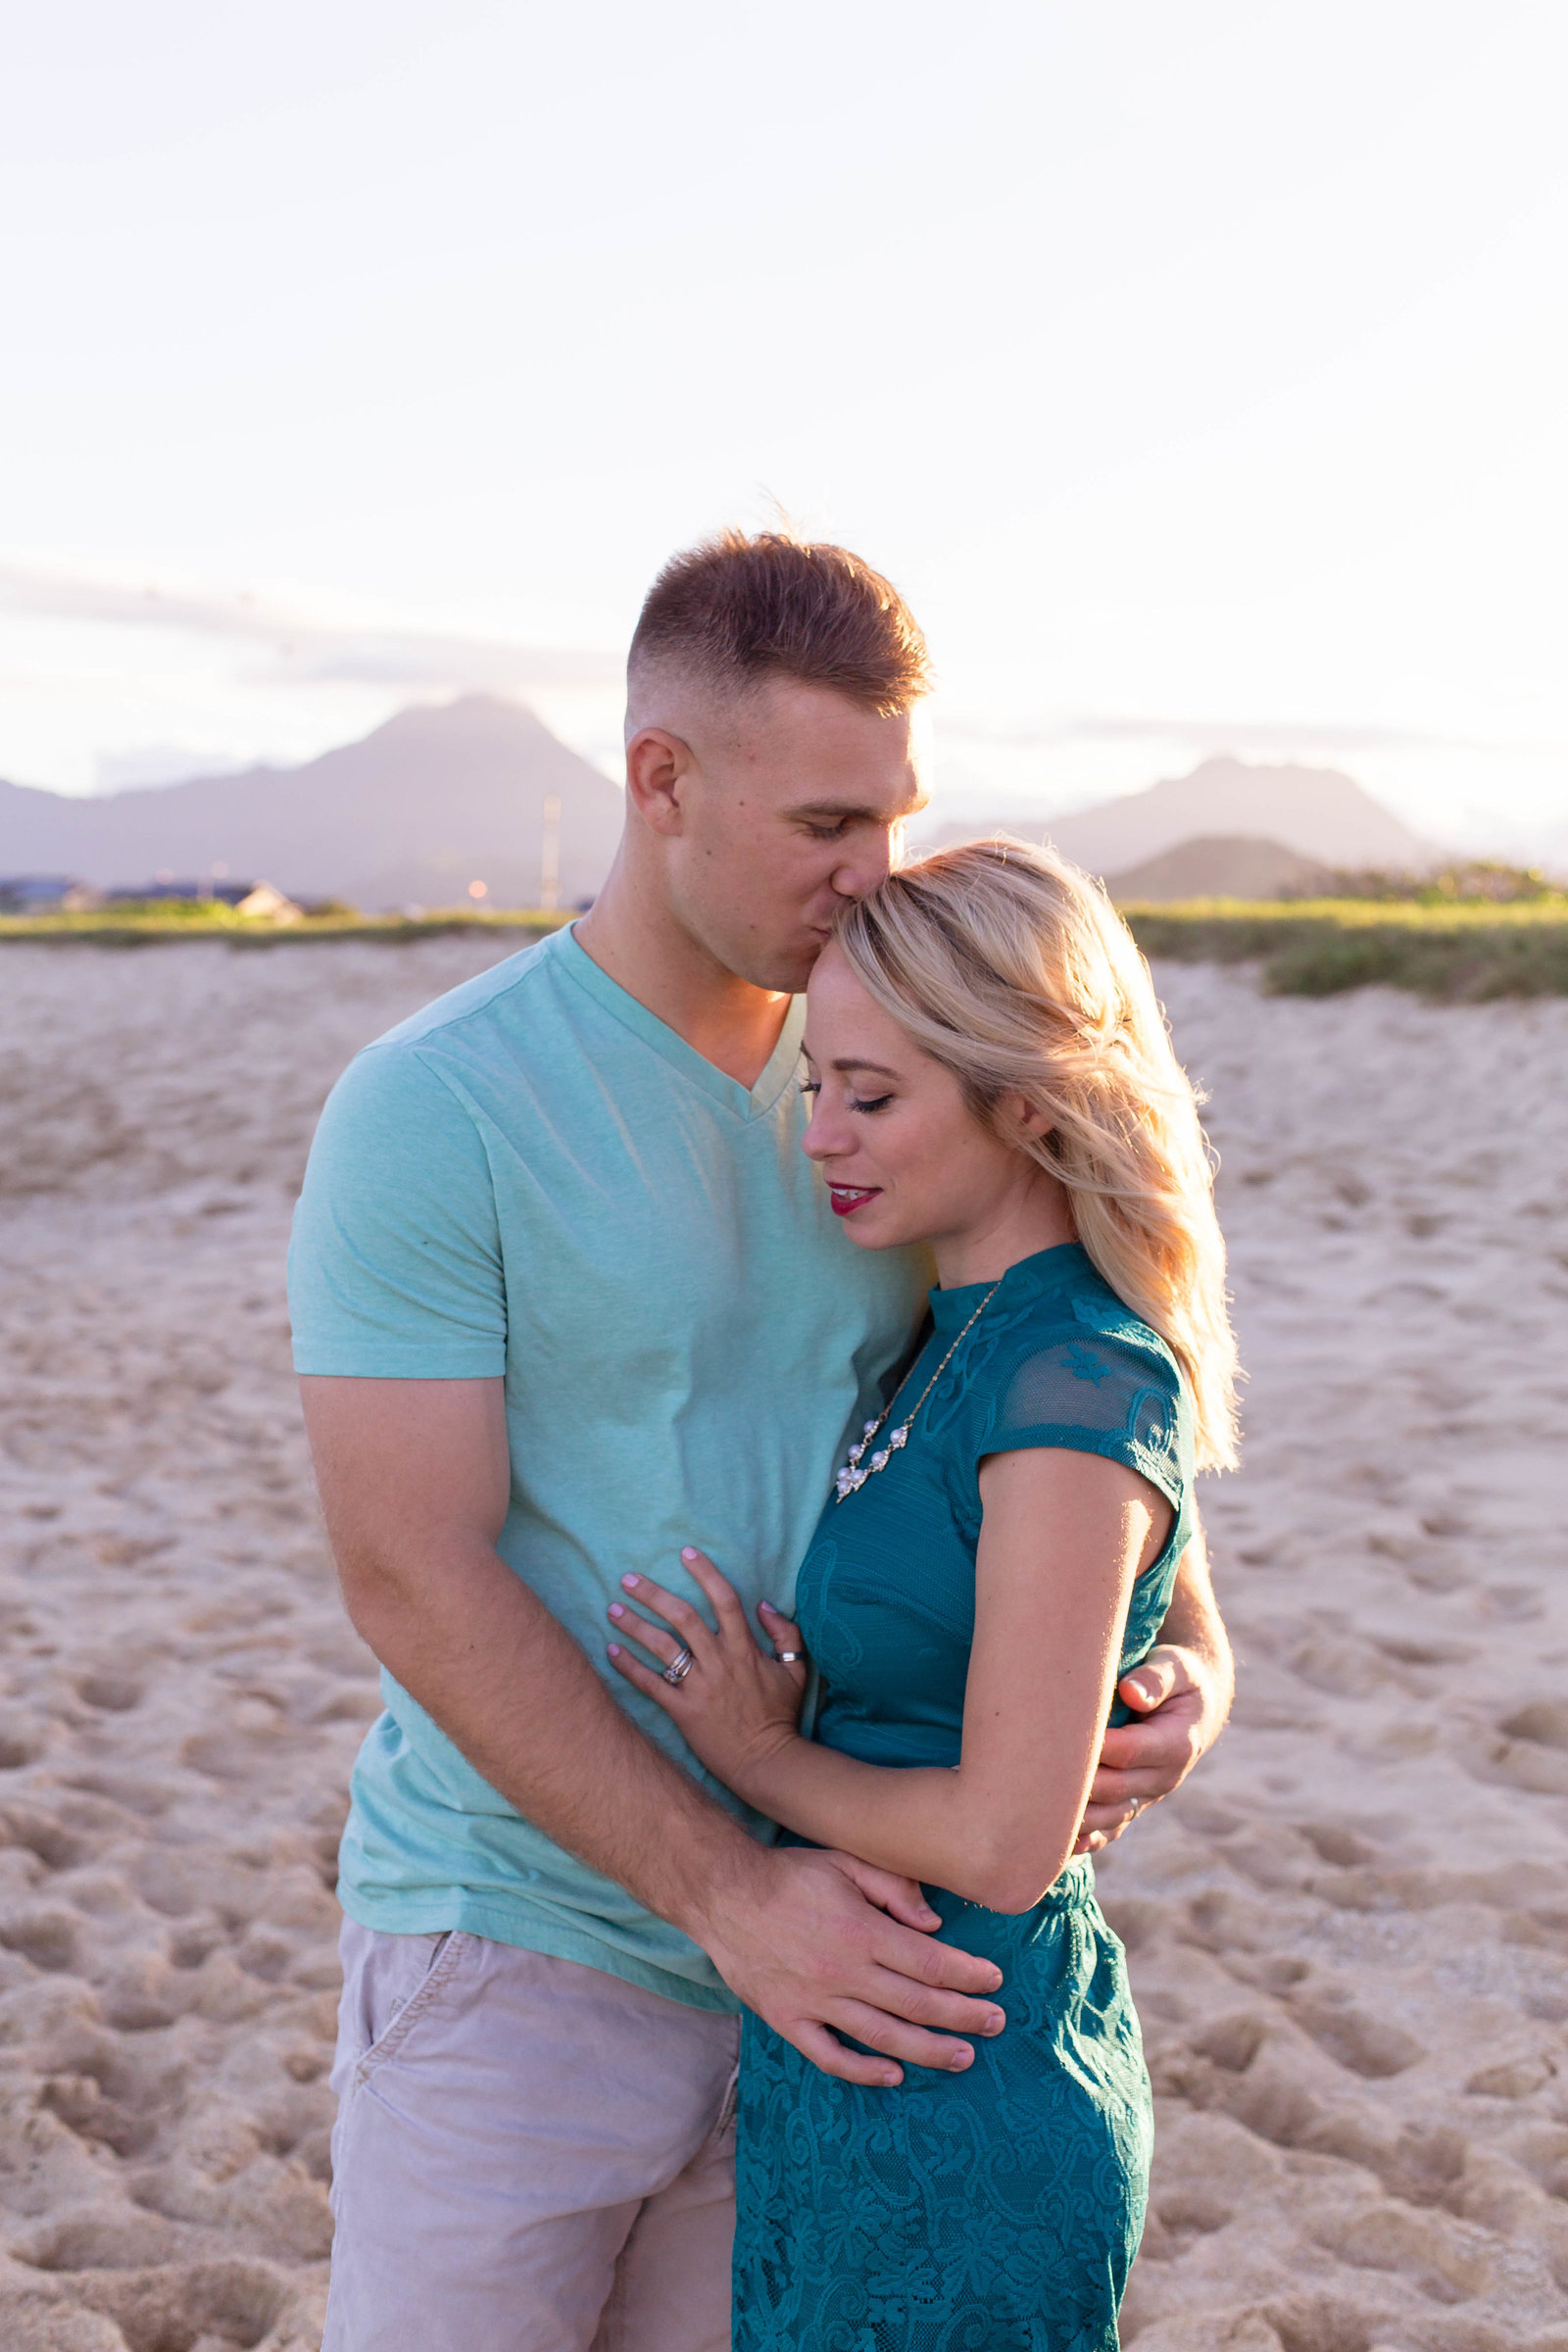 Oahu, Hawaii Lifestyle Photographer - Lifestyle Photography - Brooke Flanagan Photography - Couple on the Beach